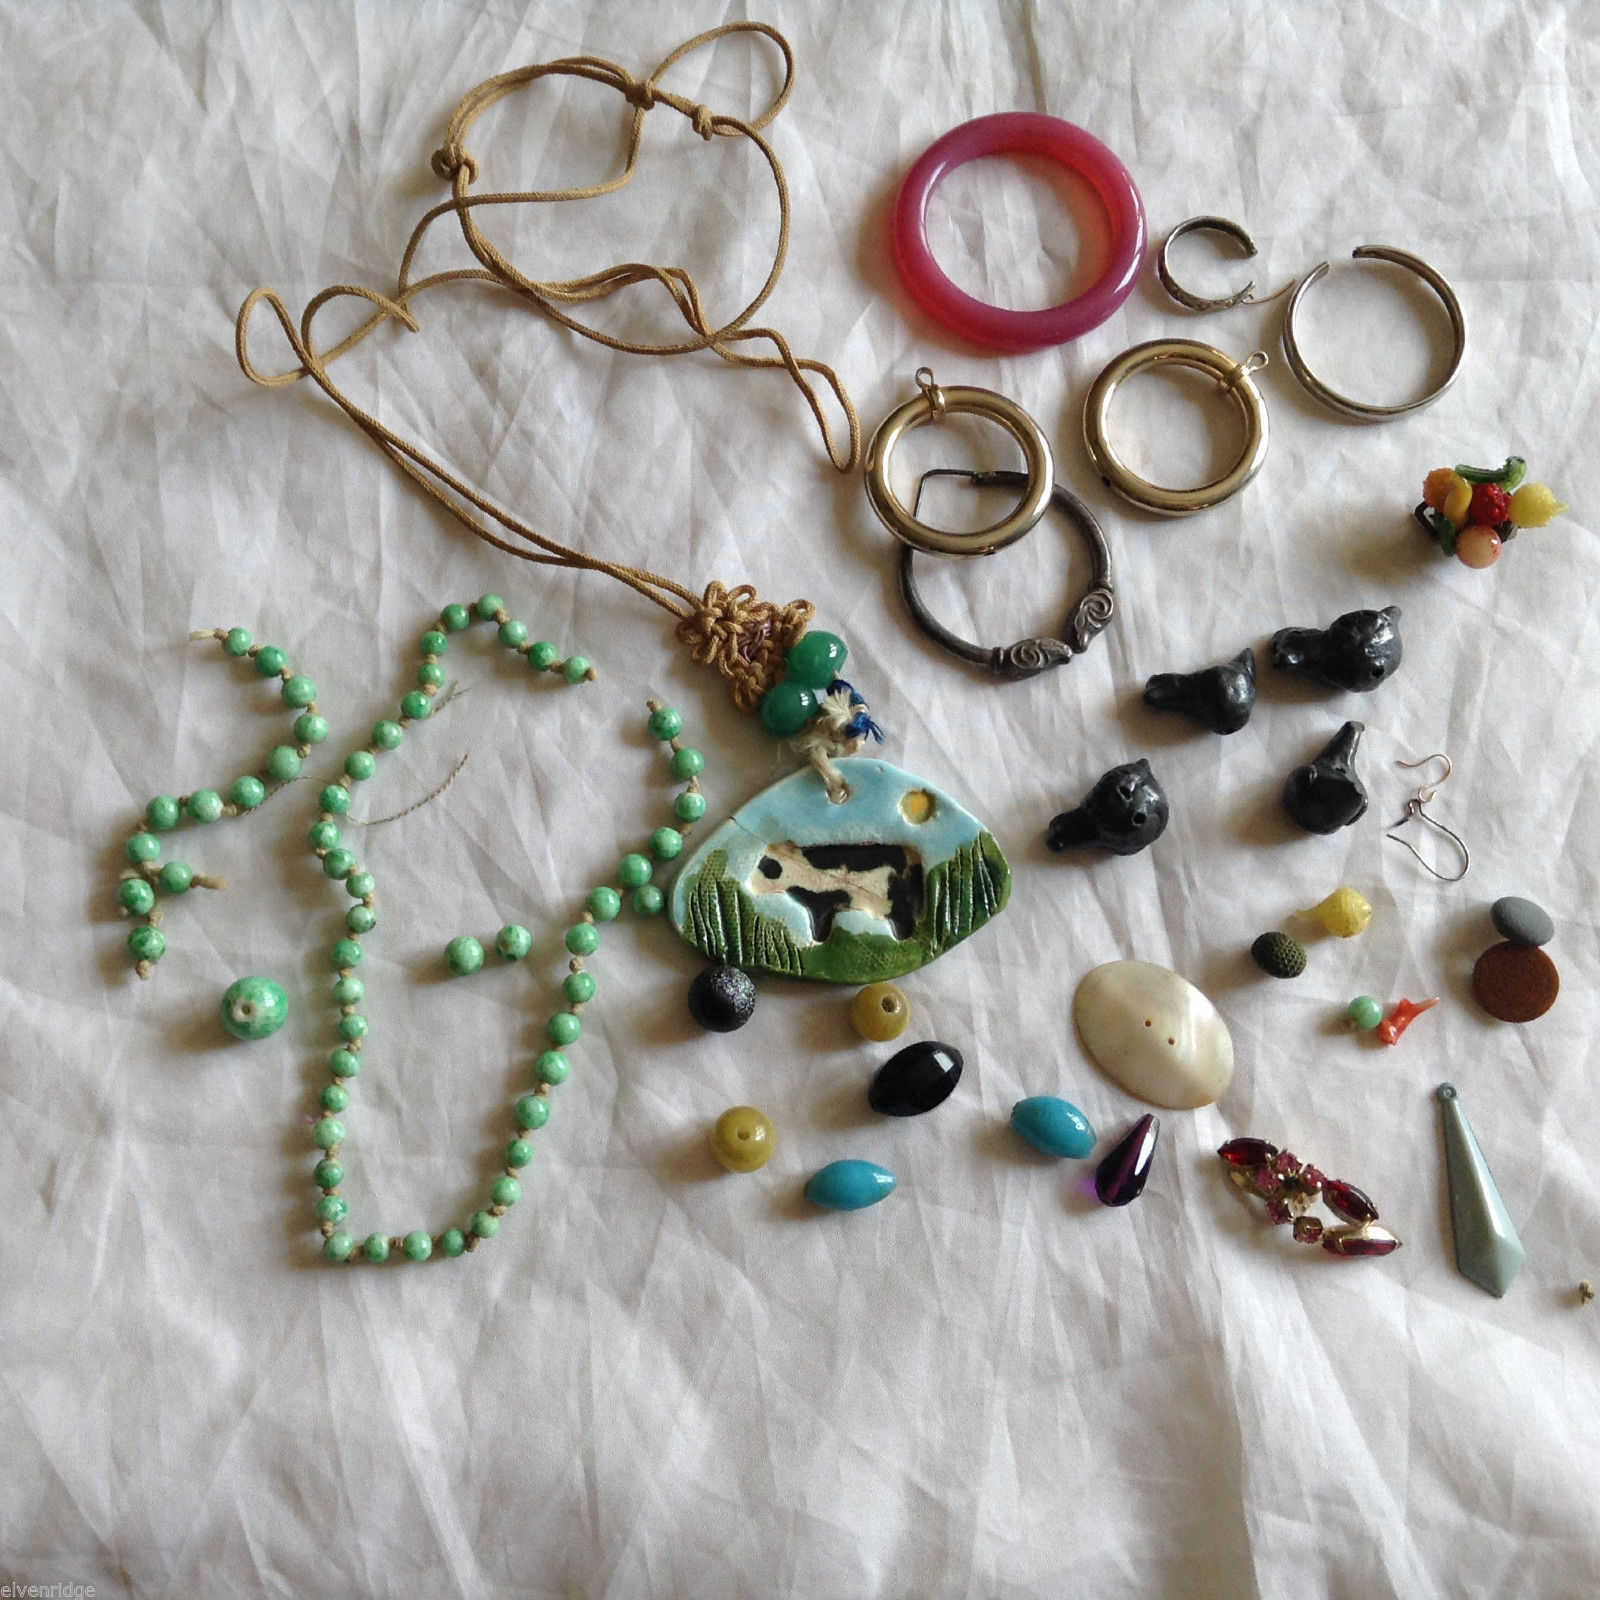 Lot of loose Beads for Restringing Repurposing Different Colors, Shapes, Sizes